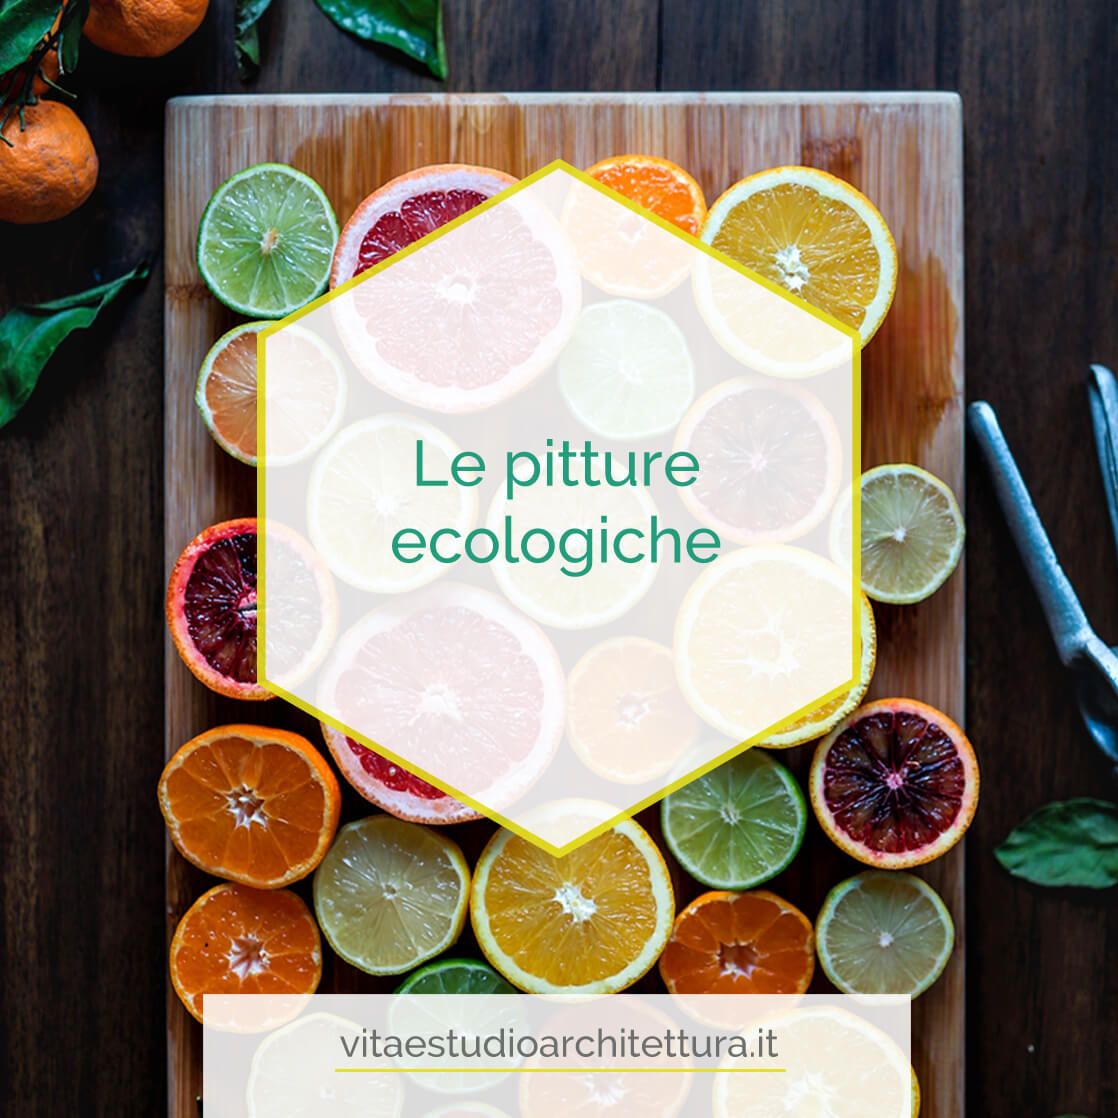 Pitture ecologiche